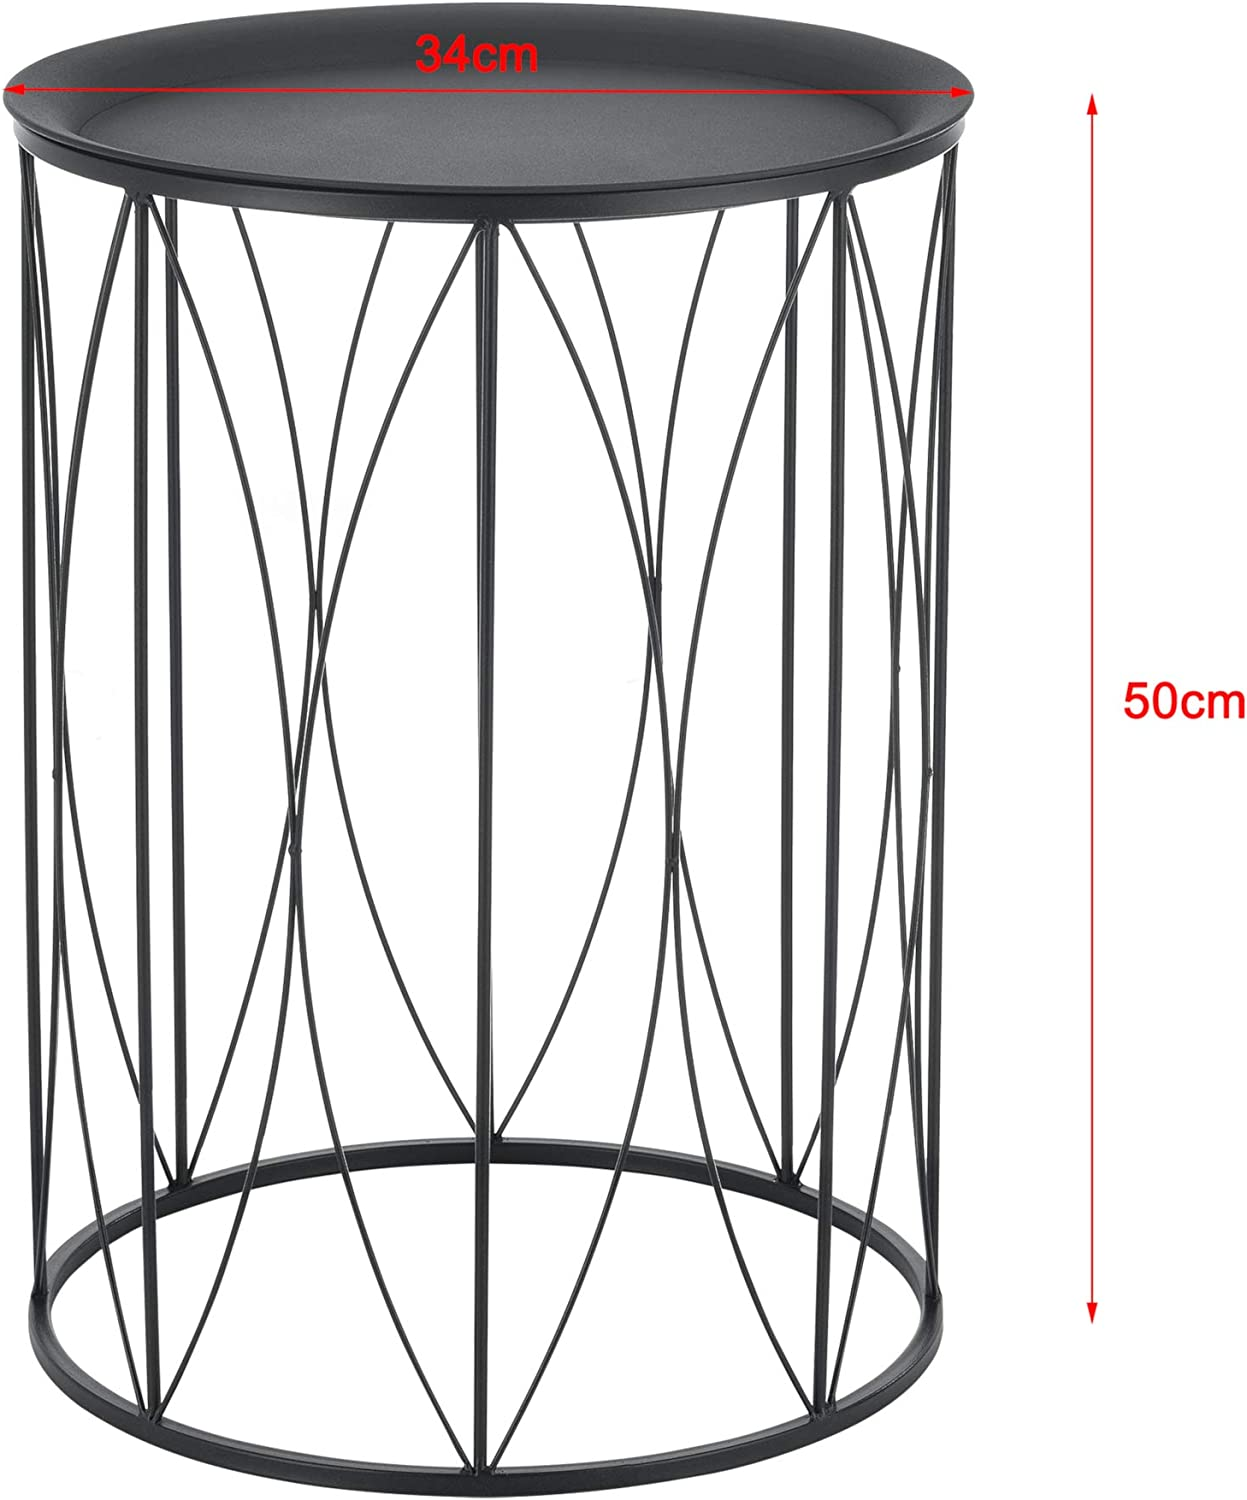 en.casa Coffee Table Nesting Table 2-Piece Set Storage Surface Different Sizes Special Frame Pattern Black